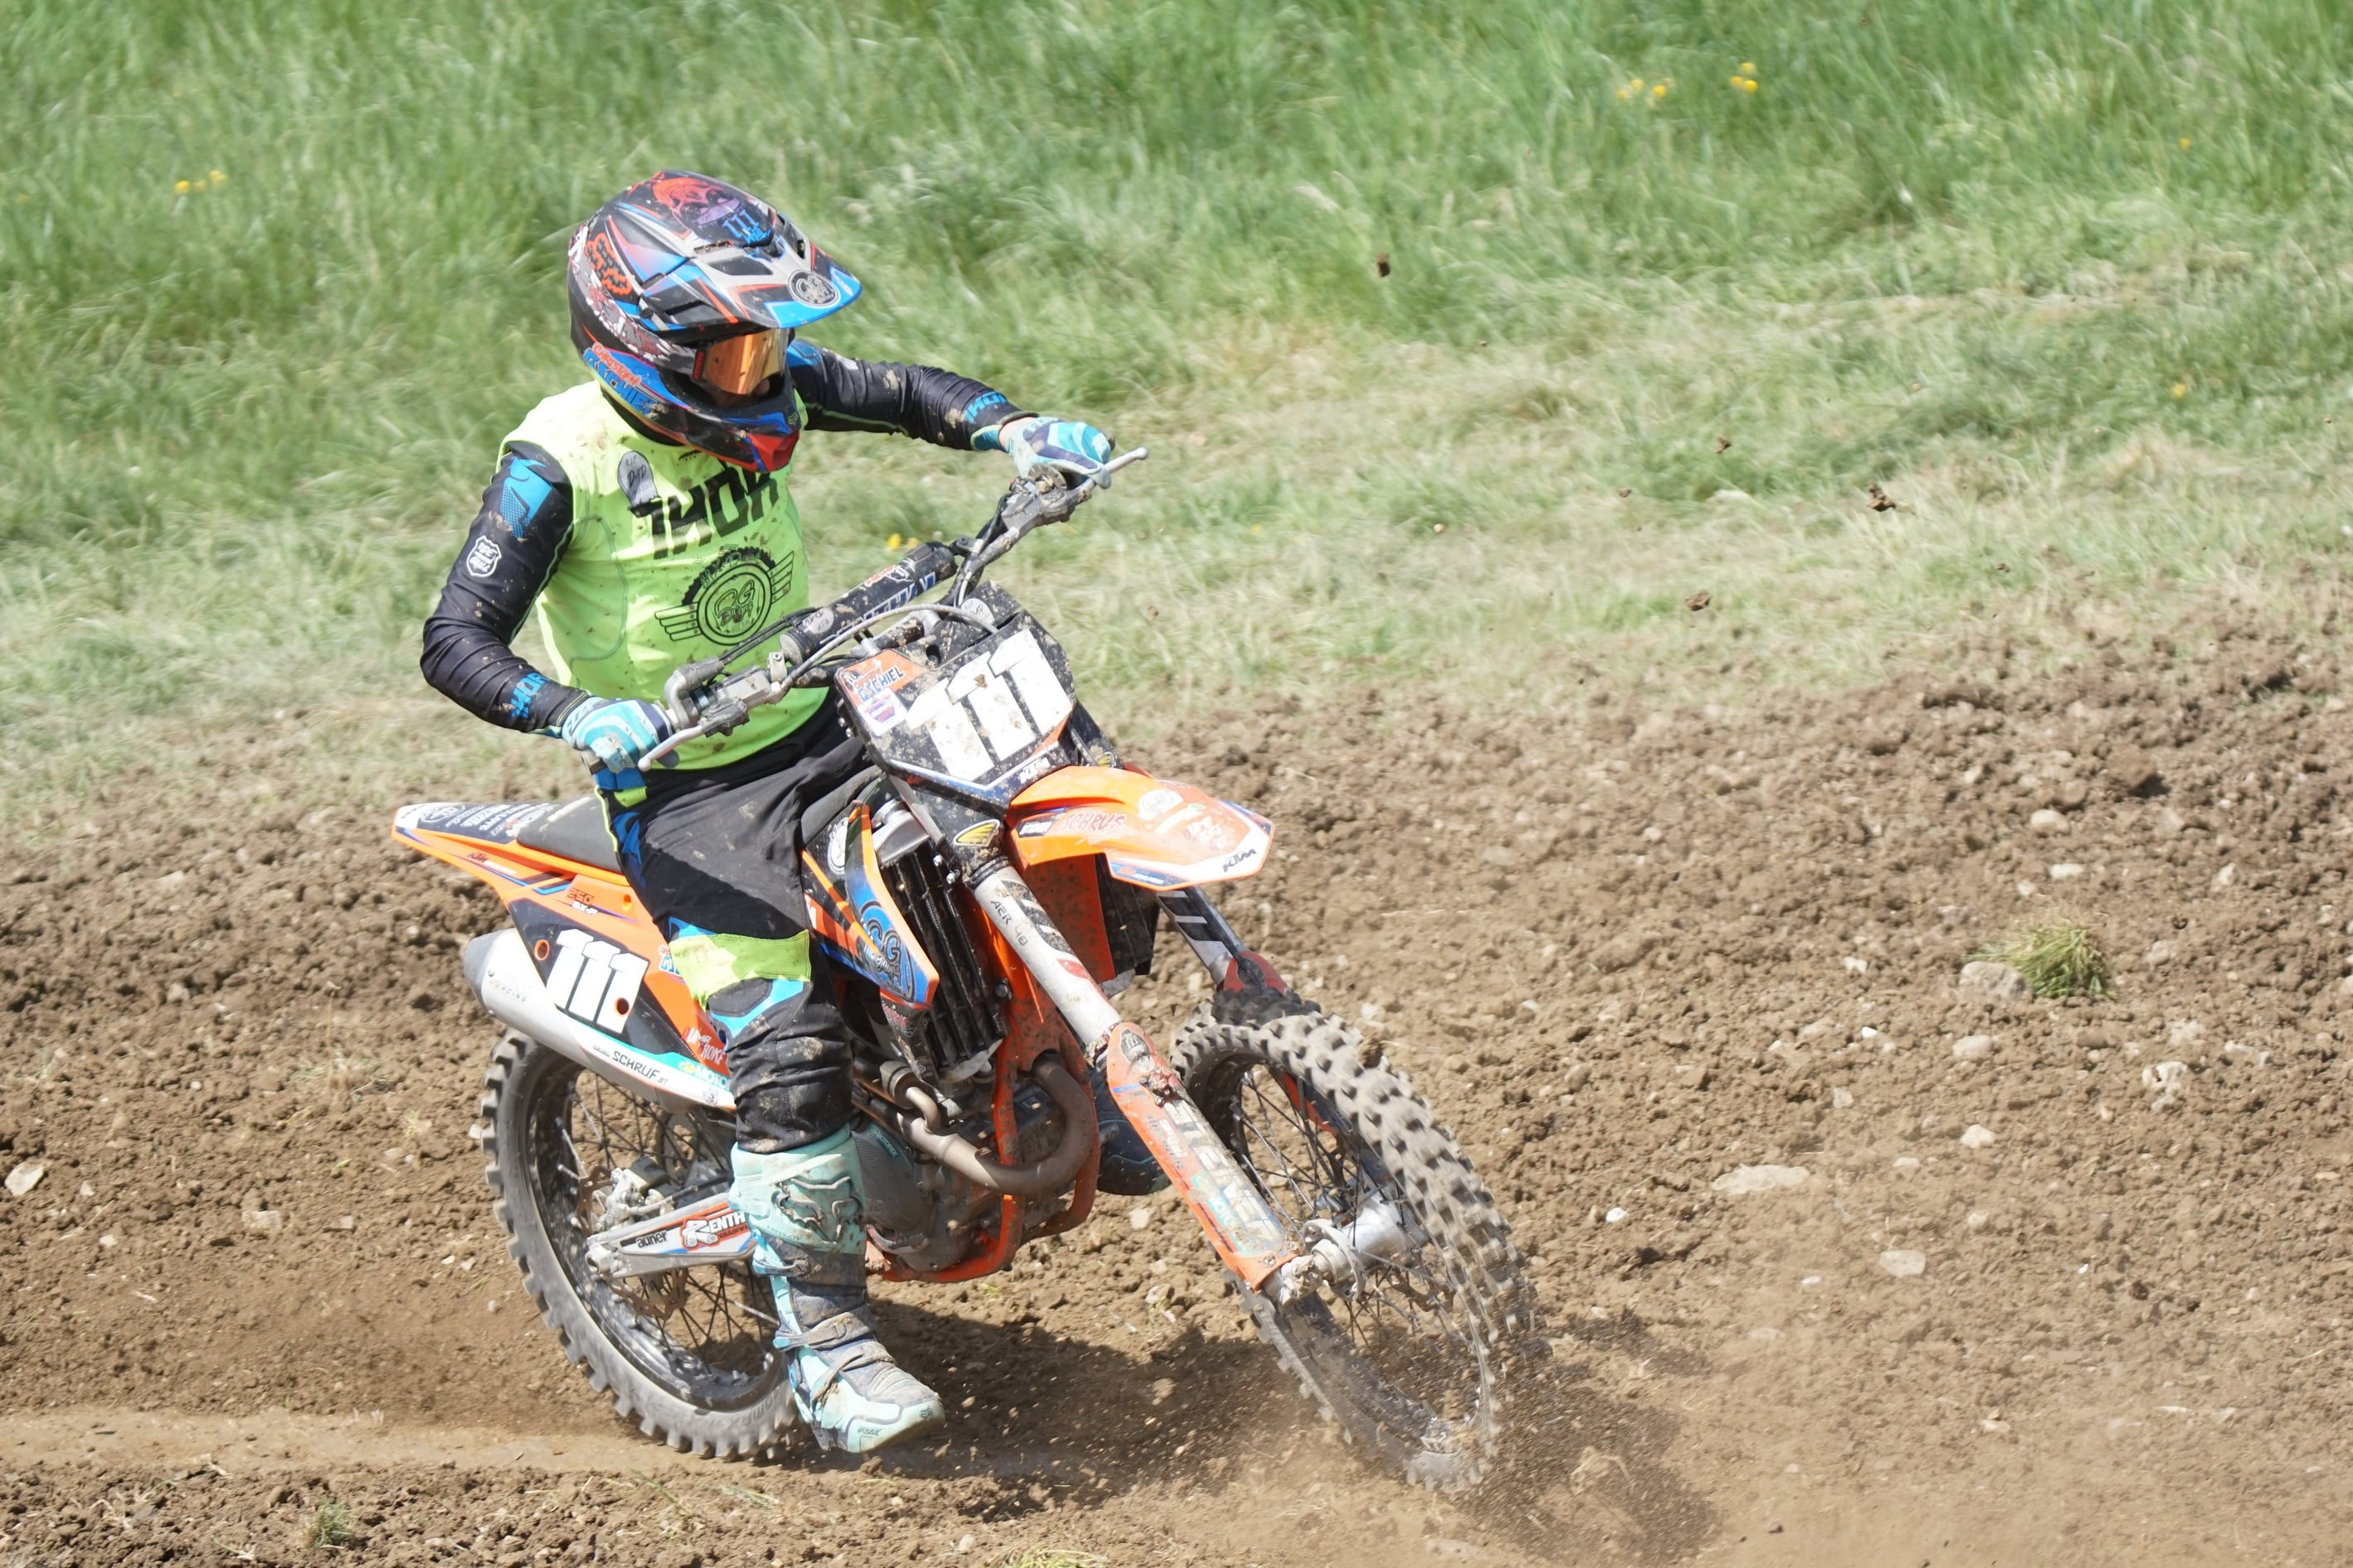 DSC 596_Moto Cross Sittendorf Teil1 am 29.04.2018